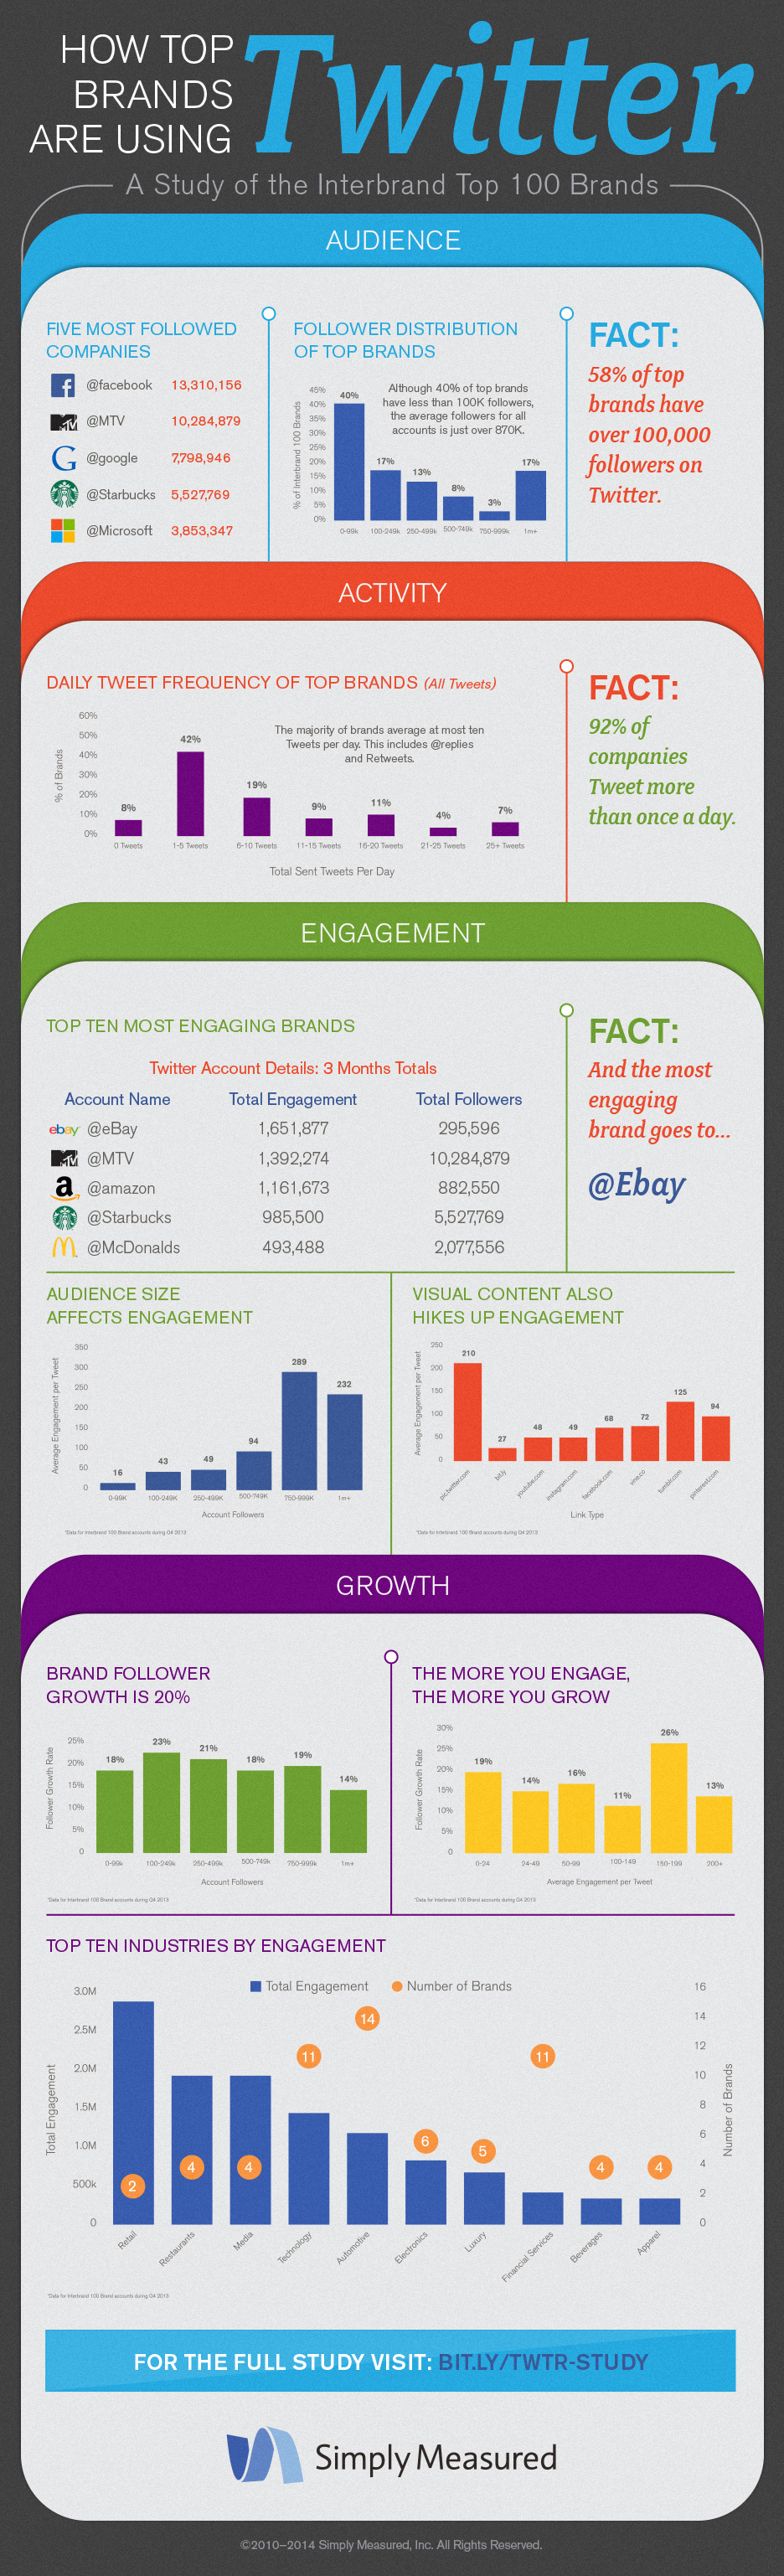 SM_Twitter_Study_Infographic_final2